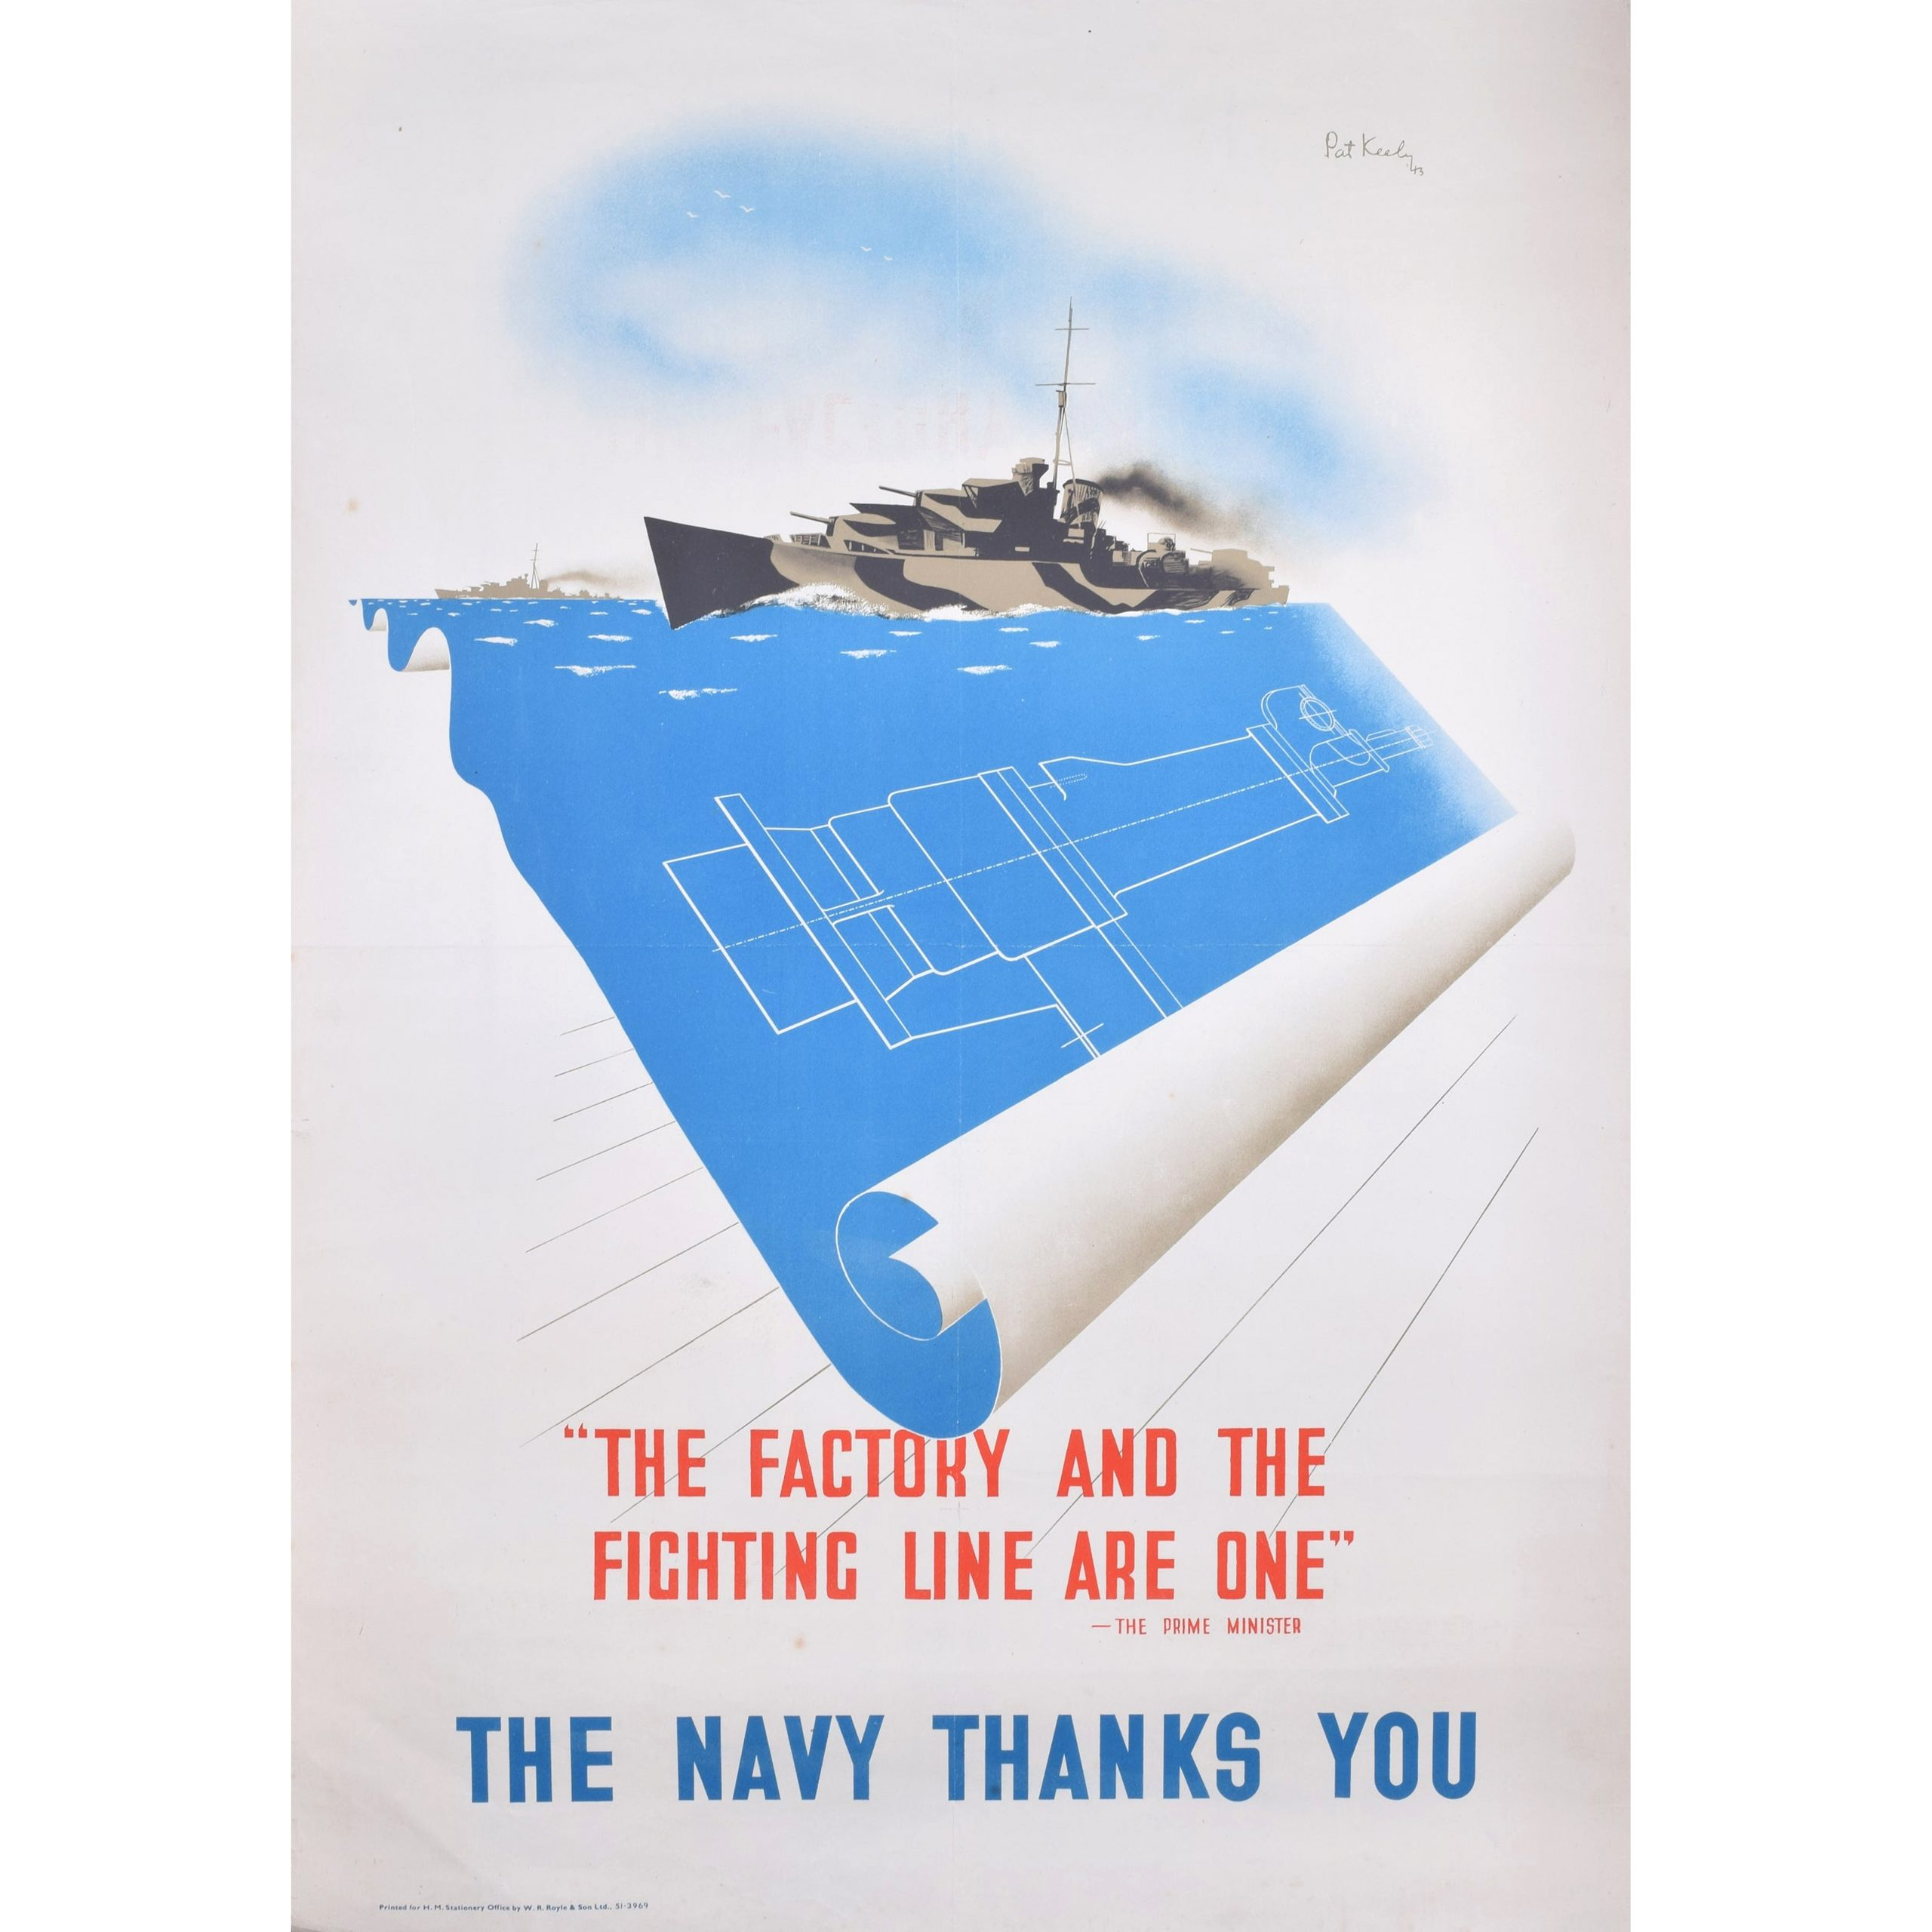 Pat Keely World War Two Royal Navy Poster - The Navy Thanks You